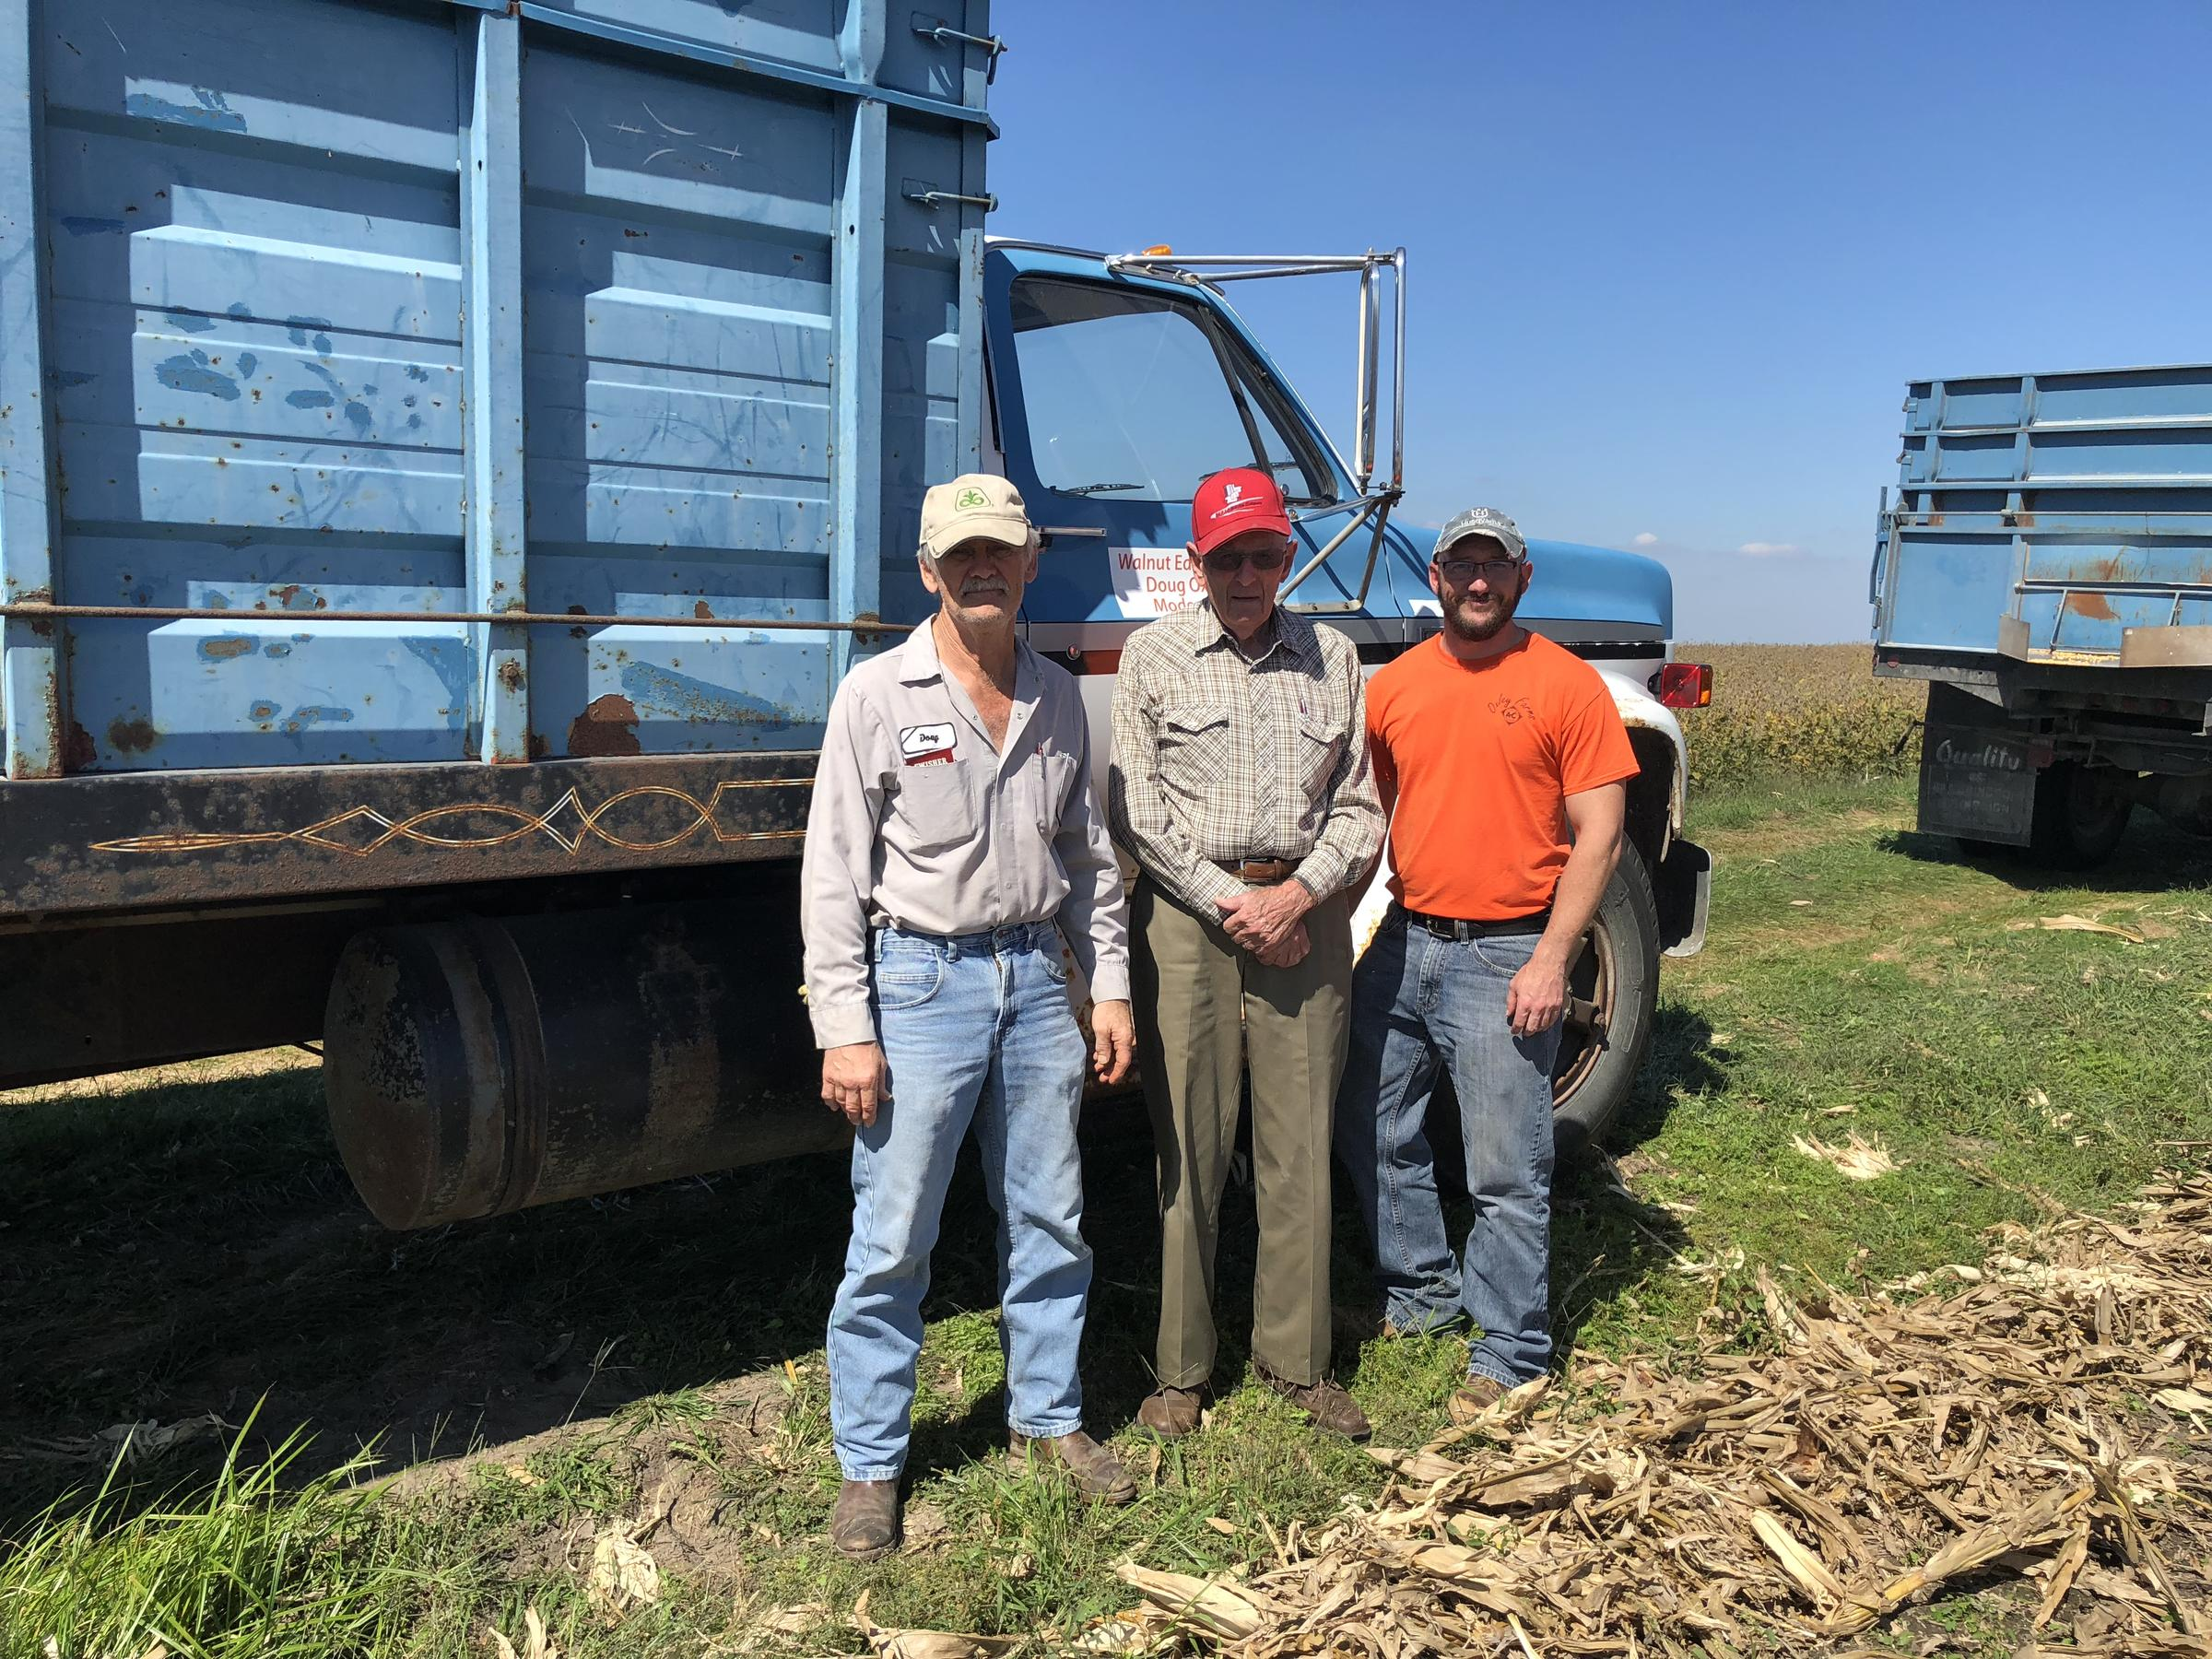 Three generations of Oxley farmers, 87 year old Gary Oxley (center) has been farming in Illinois for more than 70 years.